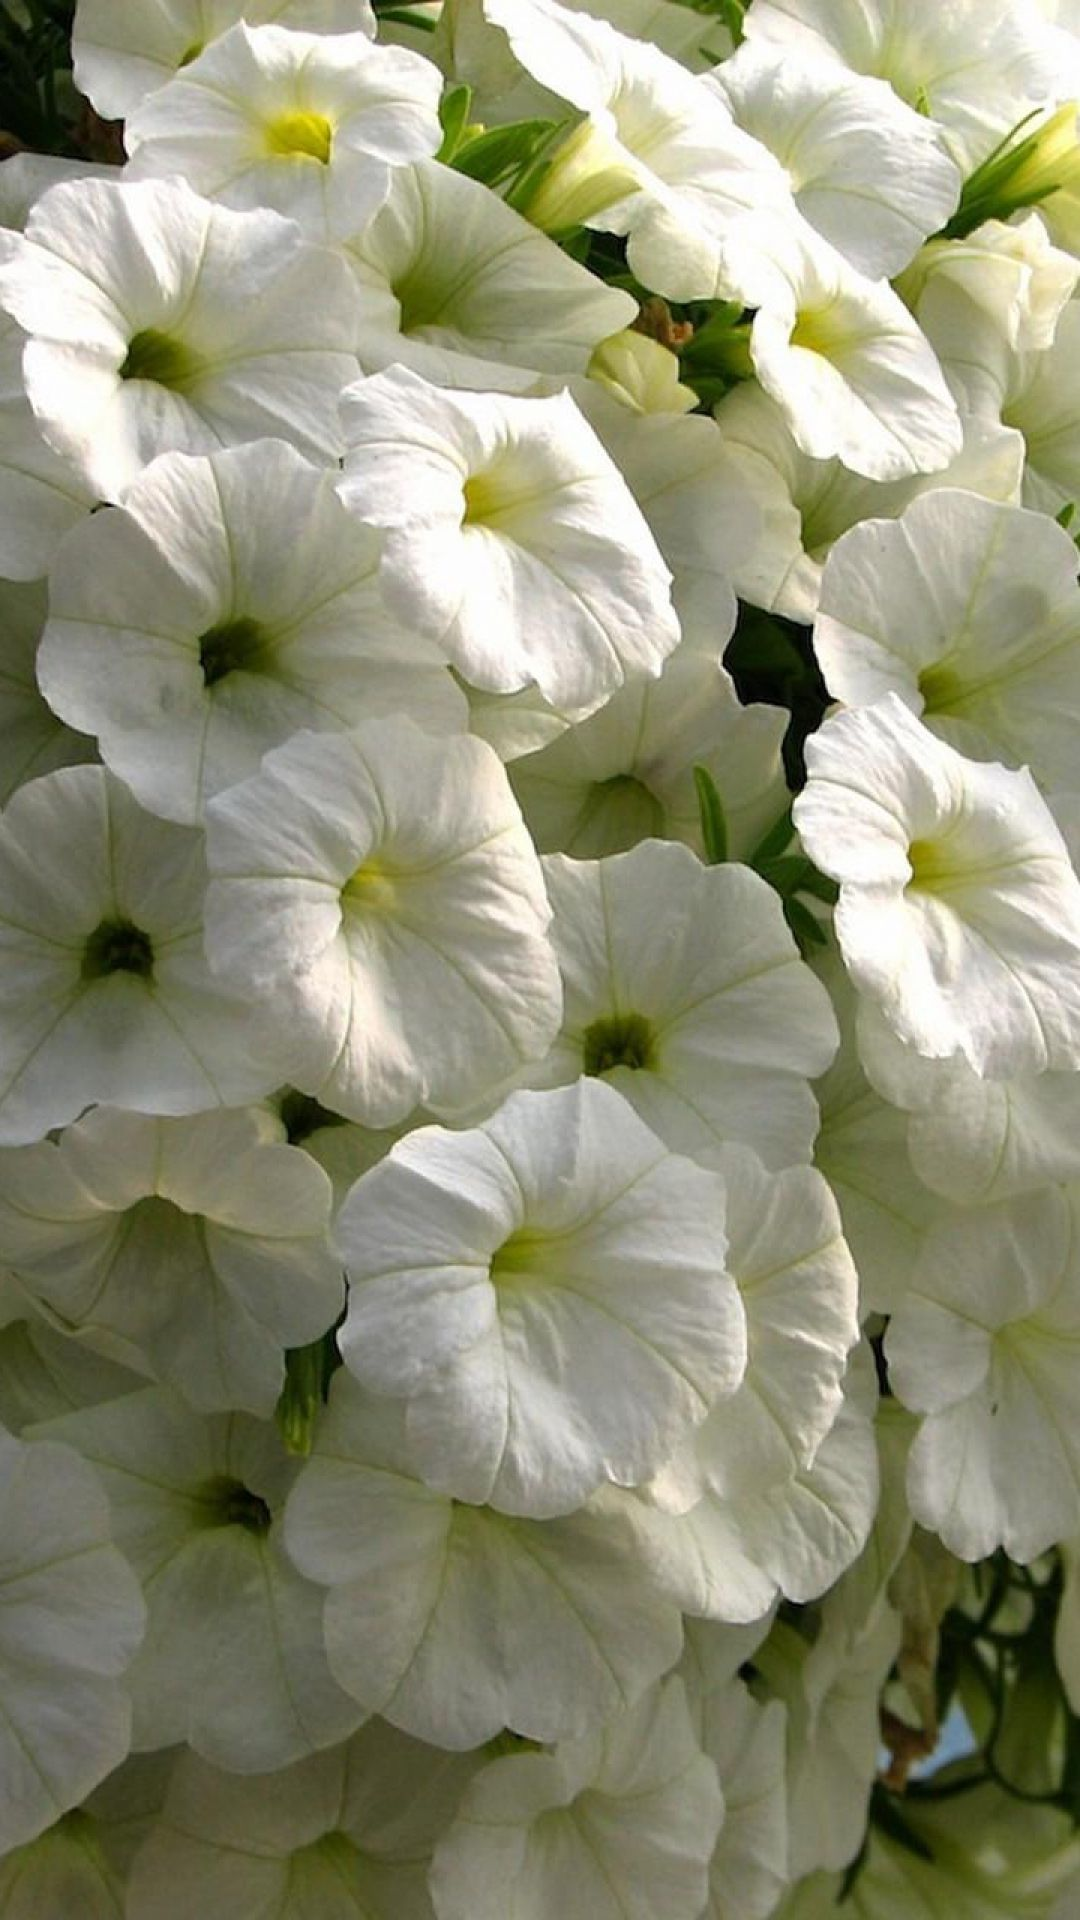 Petunia Flowers Snow White Close Up Beauty Beautiful Flowers Garden Petunias Flowers